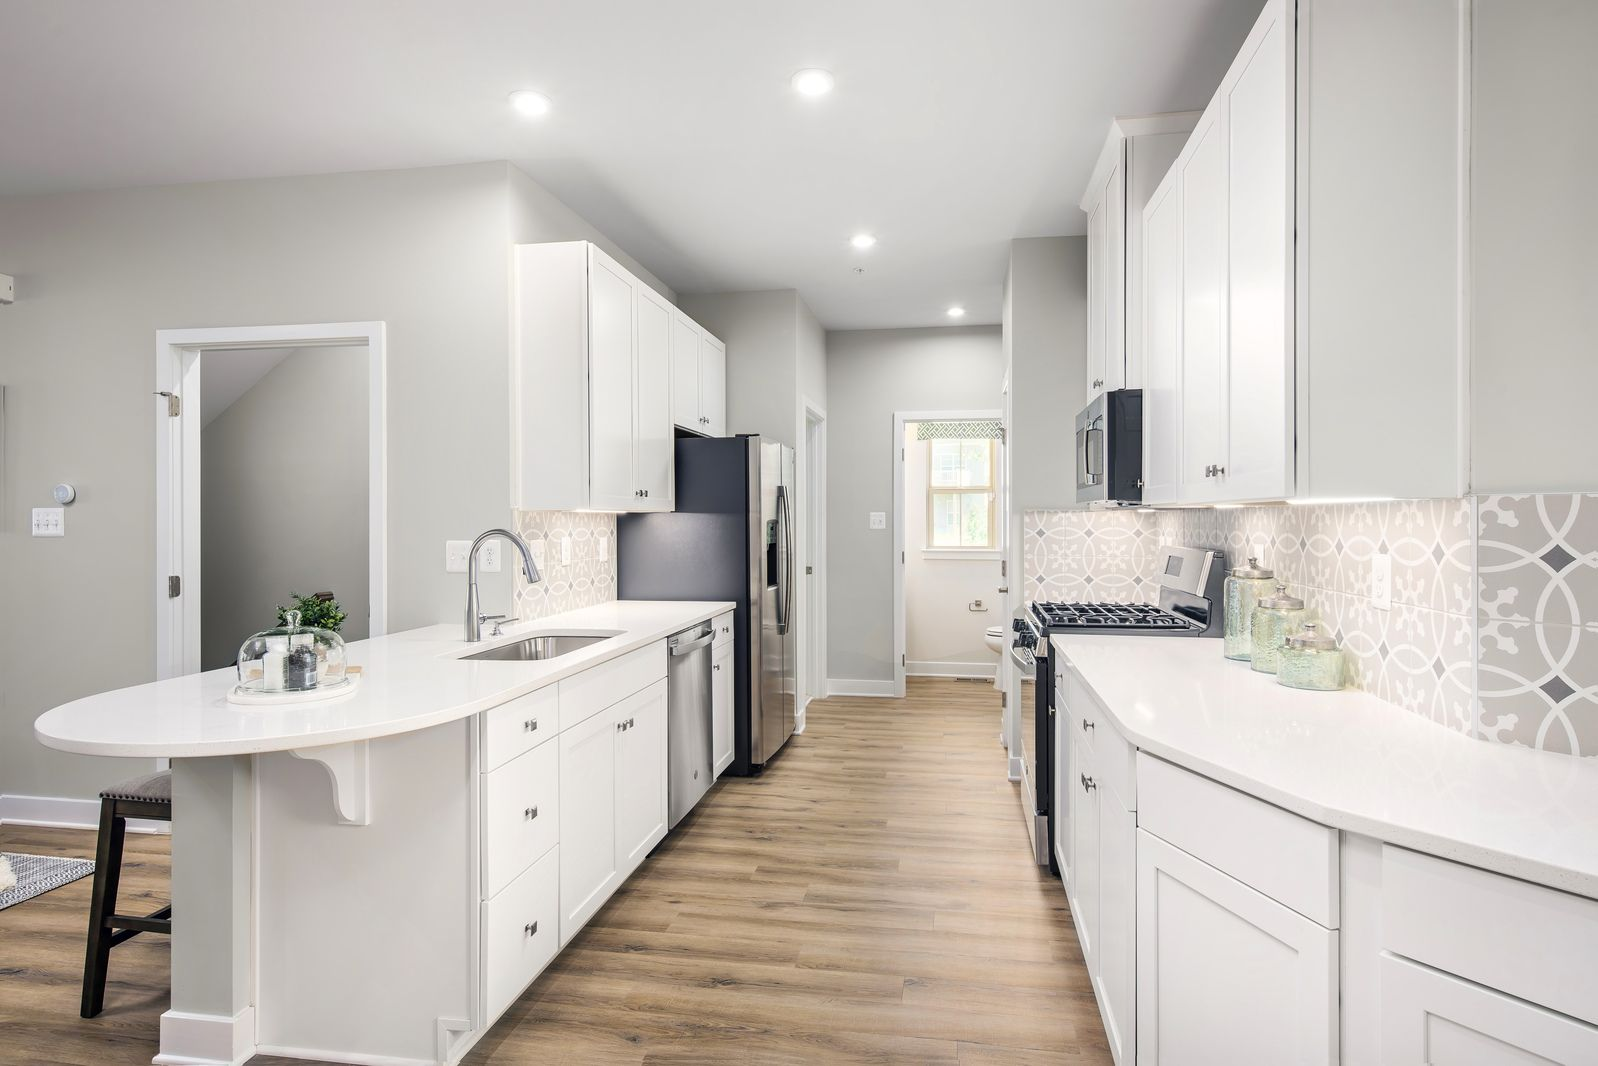 Kitchen featured in the Calvert Basement By Ryan Homes in Washington, MD